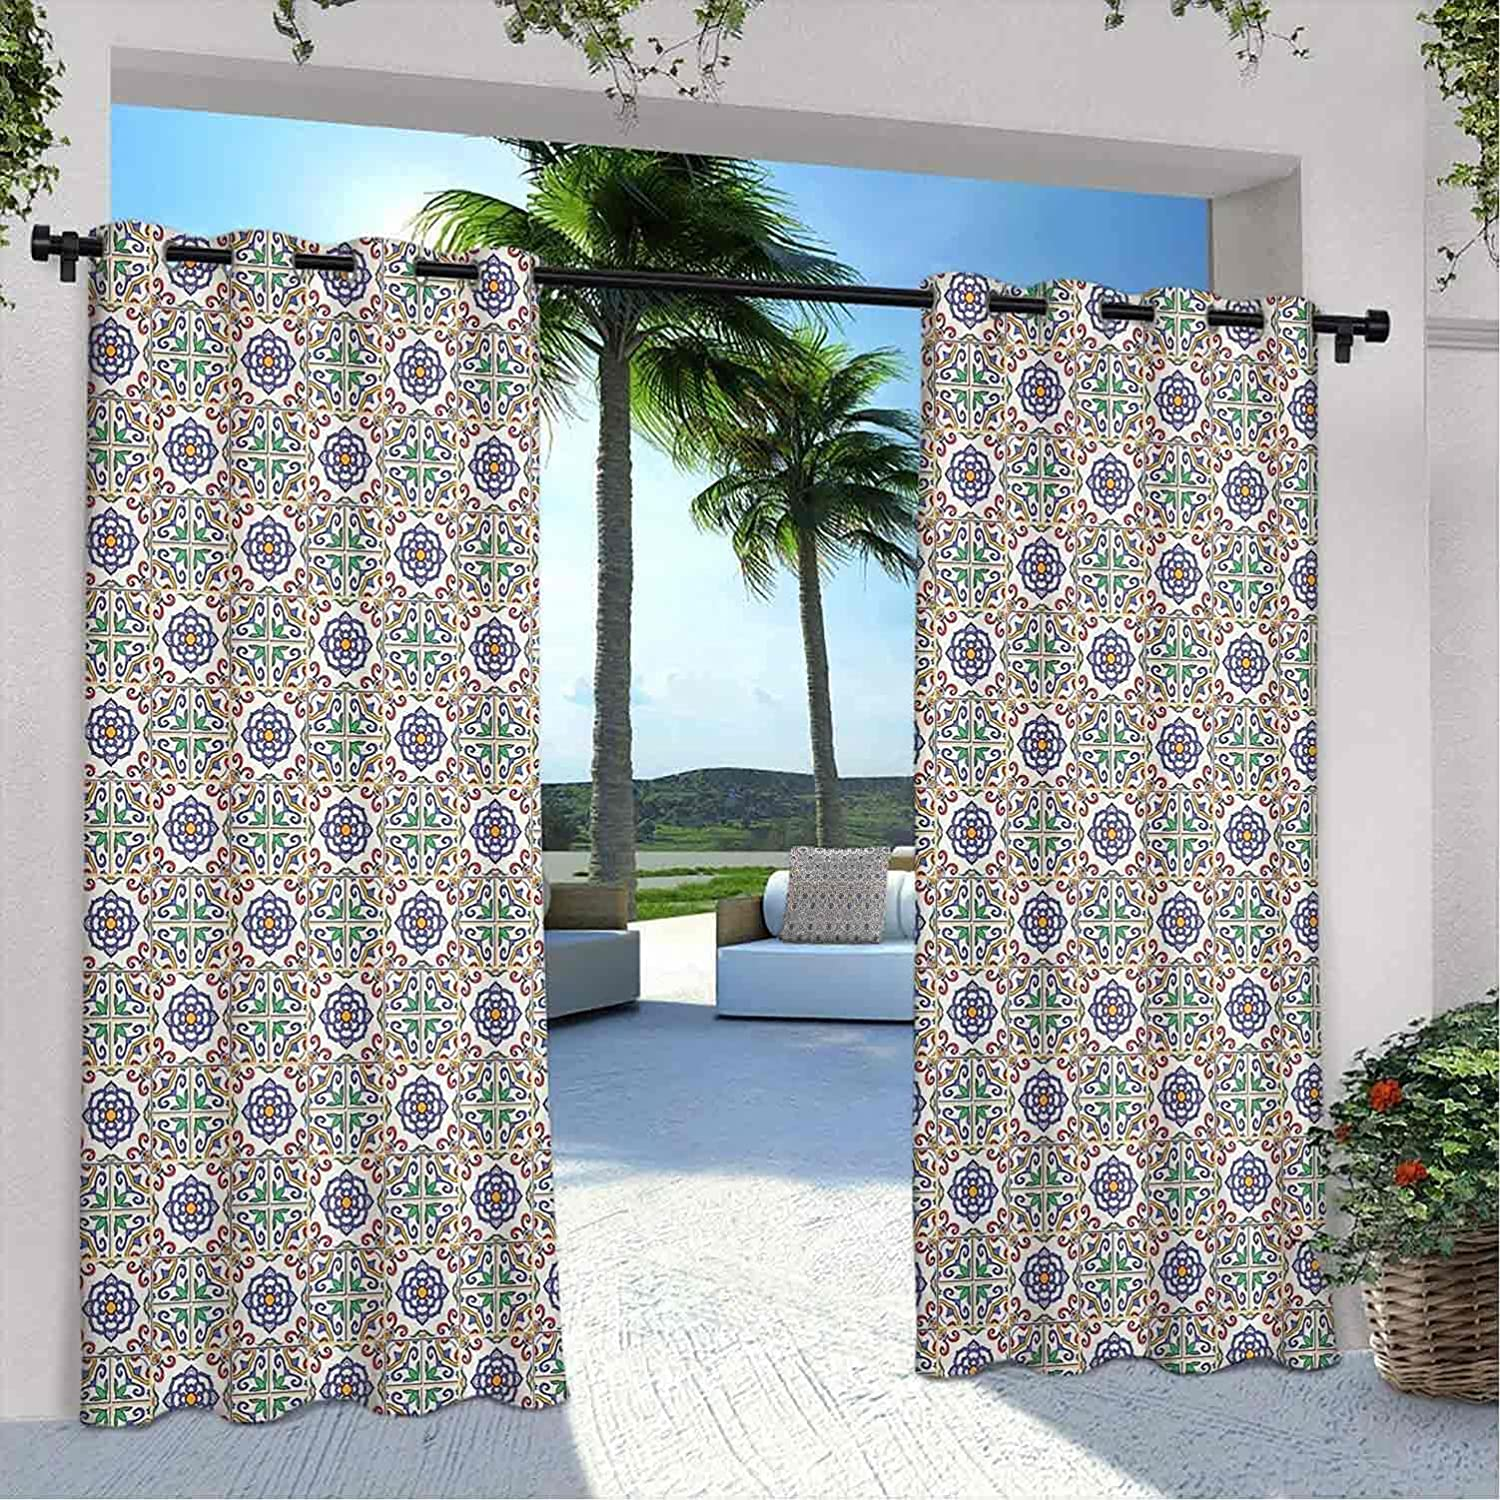 Geometric Outdoor Curtains for Portuguese Patio It is very popular Waterproof Free shipping anywhere in the nation Tile